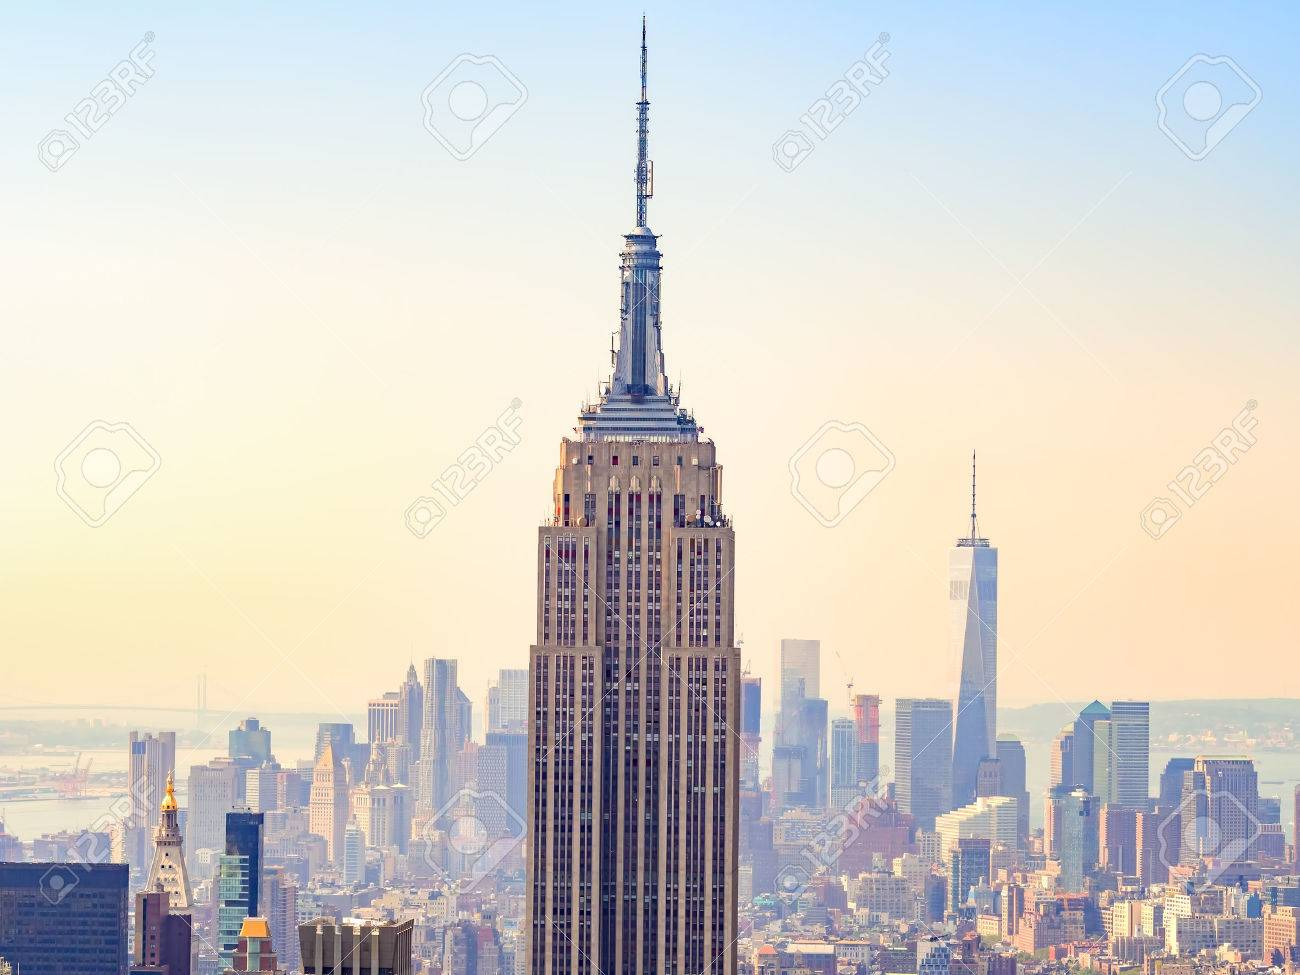 Sunset over the Empire State Building and New York City - 45025164